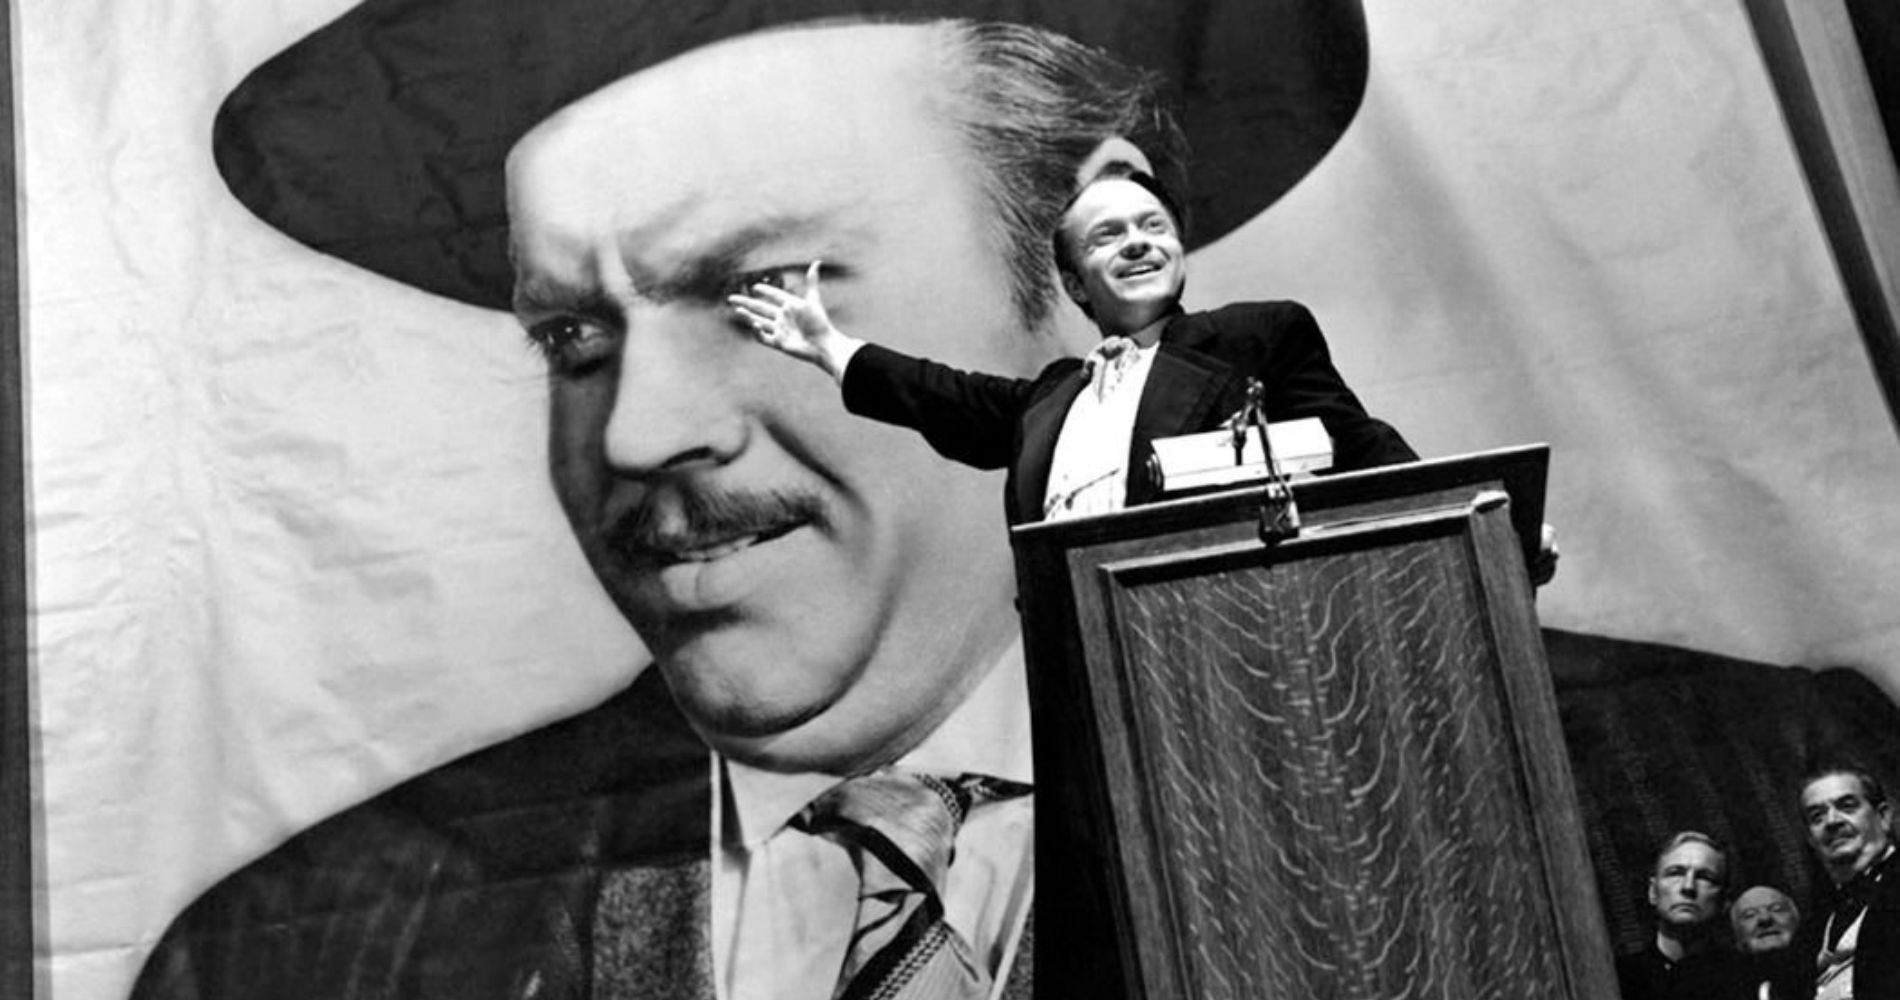 Citizen Kane, movies, celebs, Orson Welles